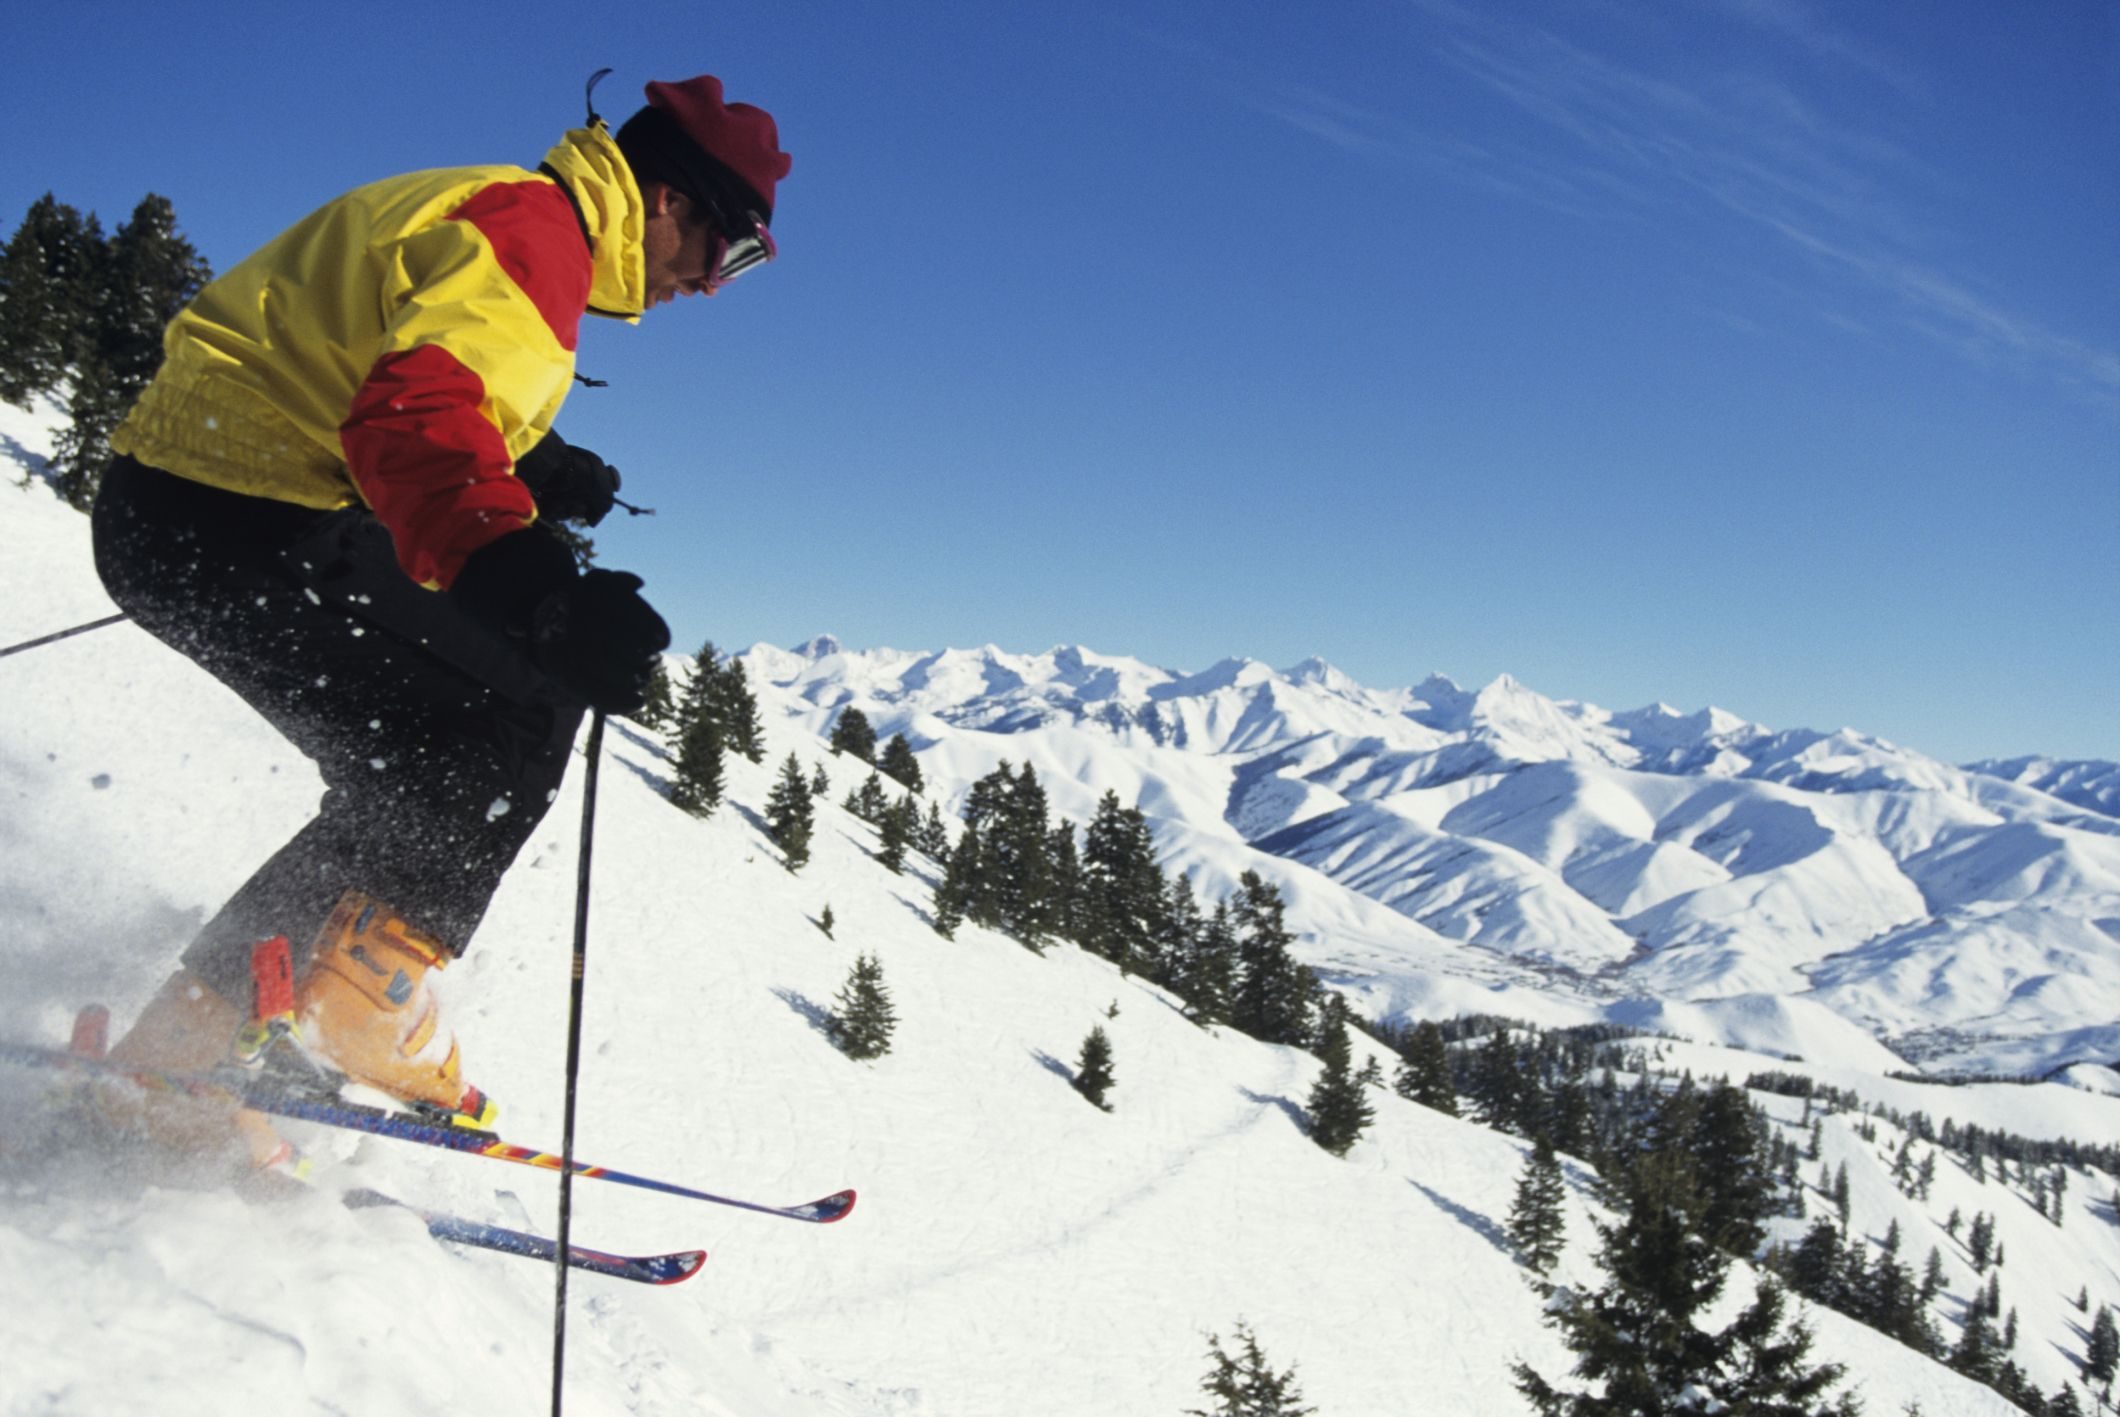 Downhill skier high in Idaho moutains